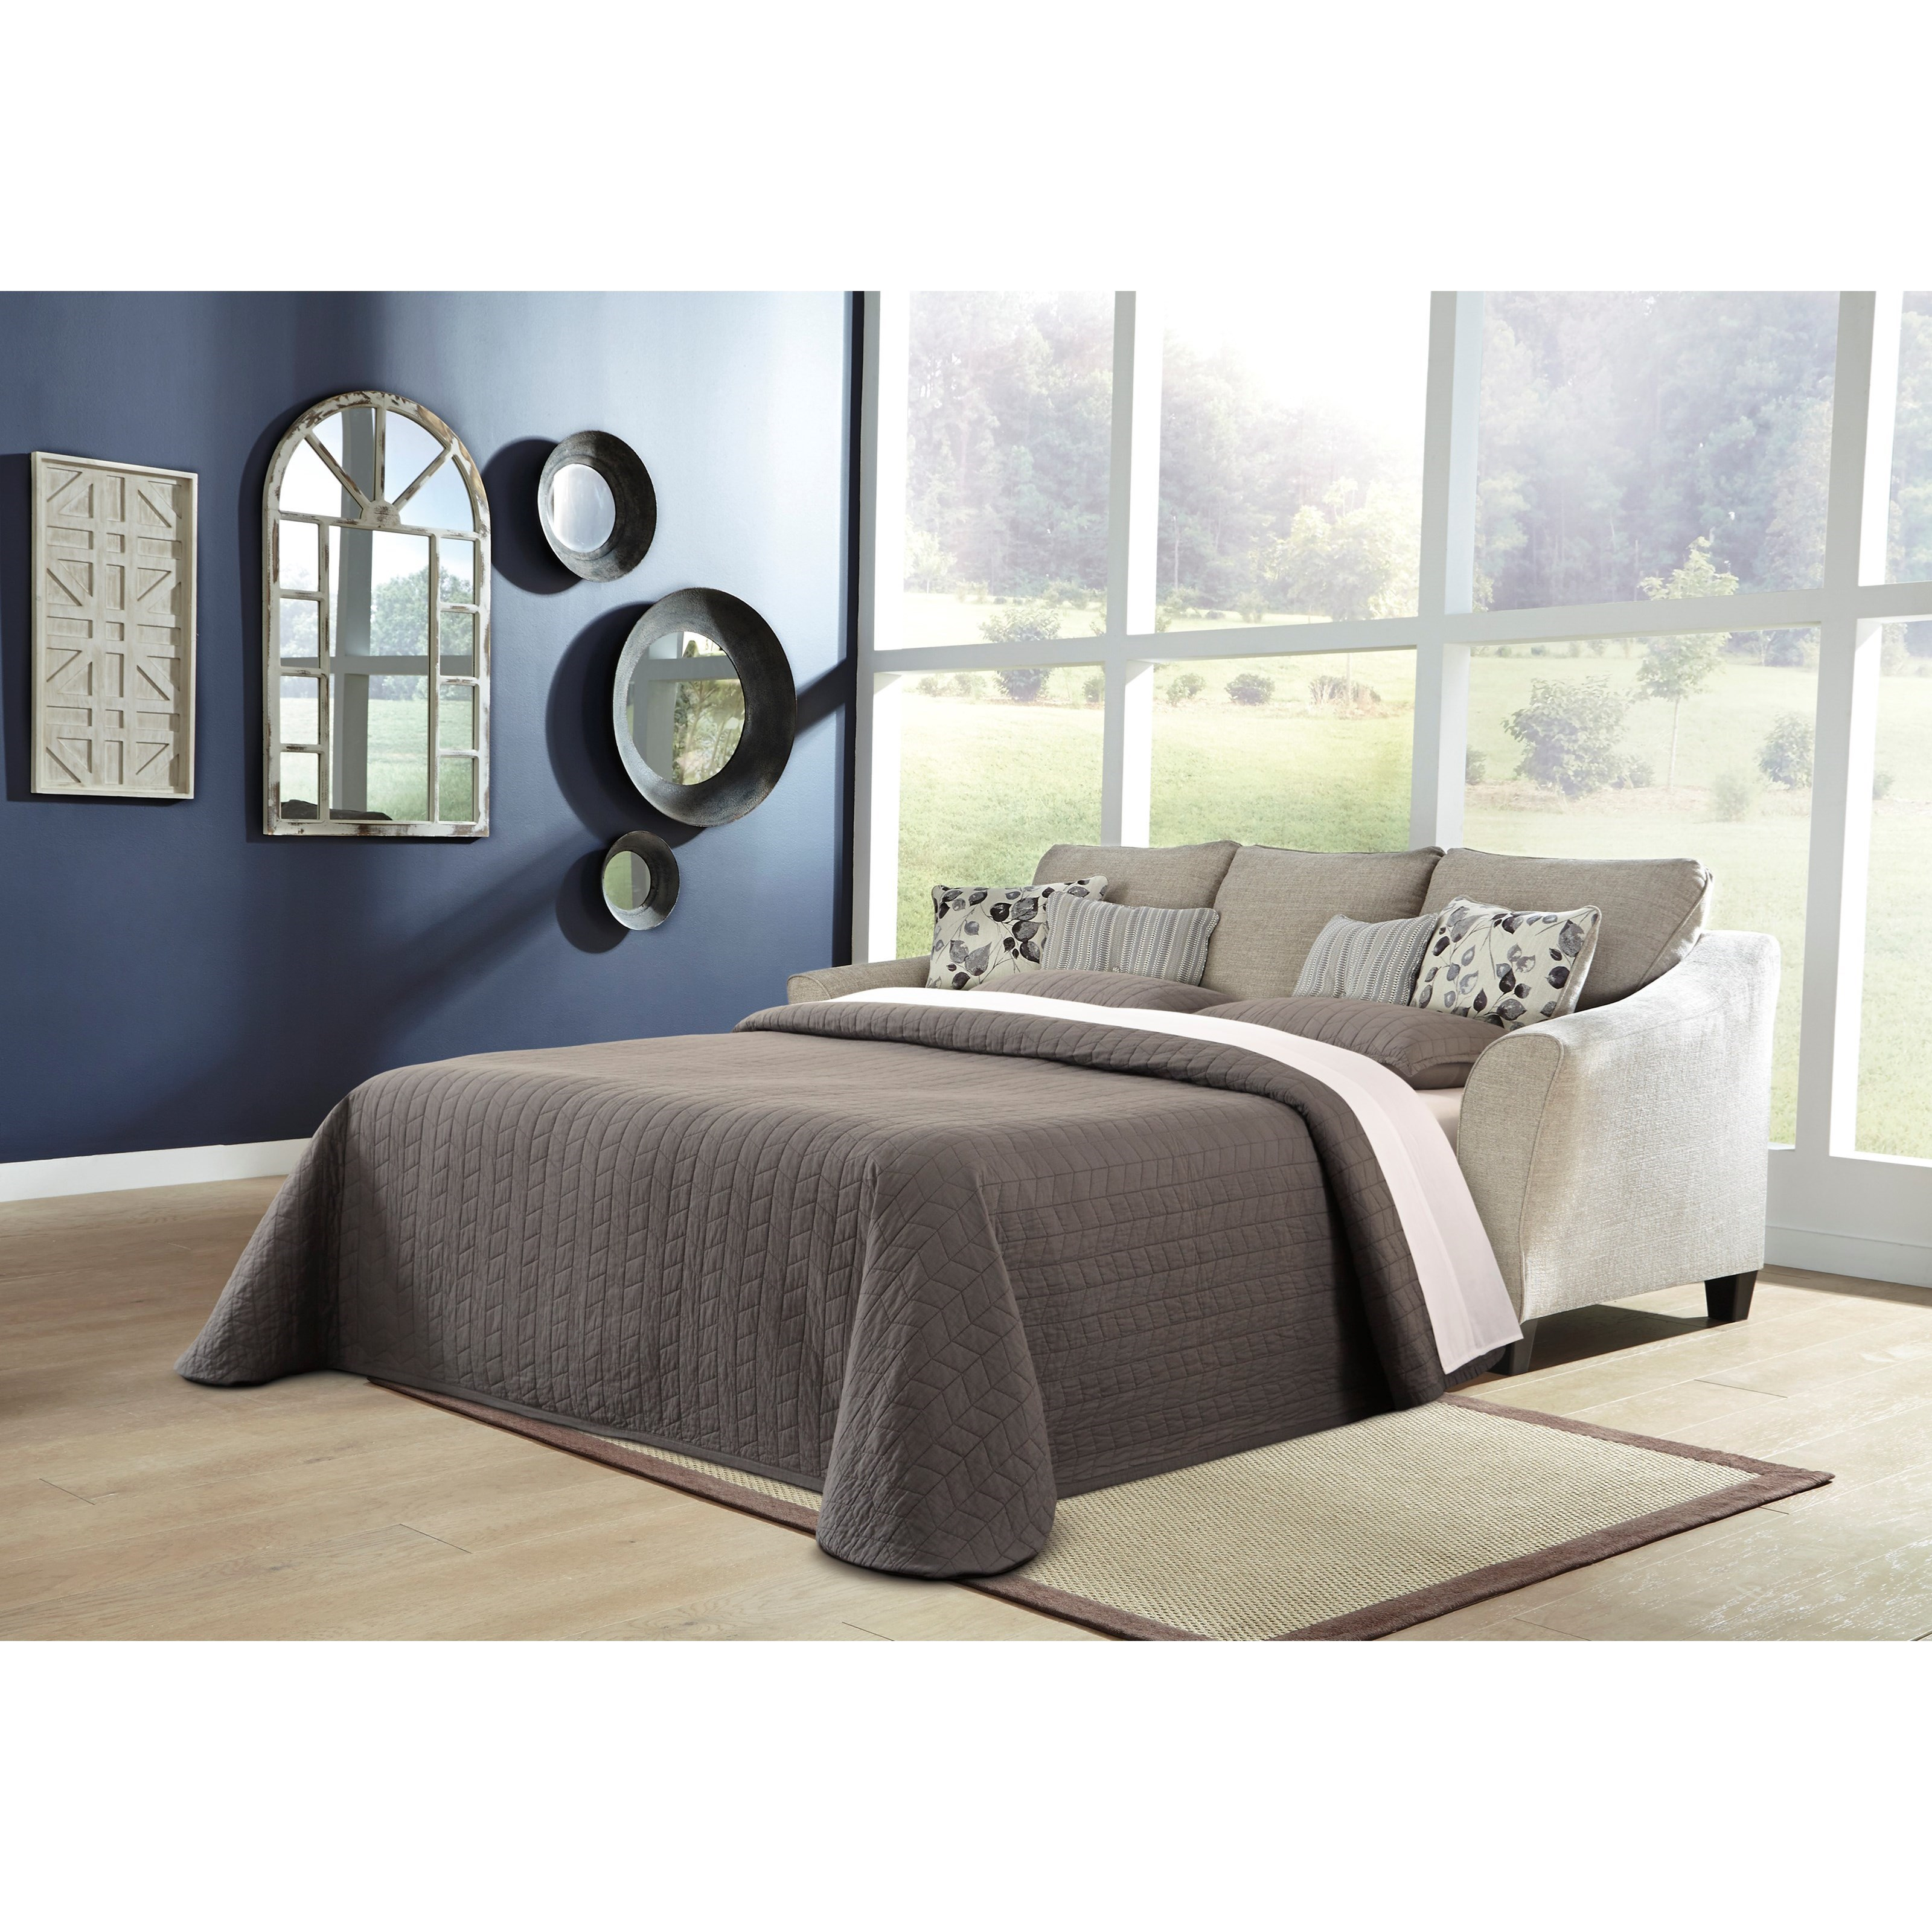 Benchcraft Abney 4970168 Sofa Chaise With Queen Sleeper